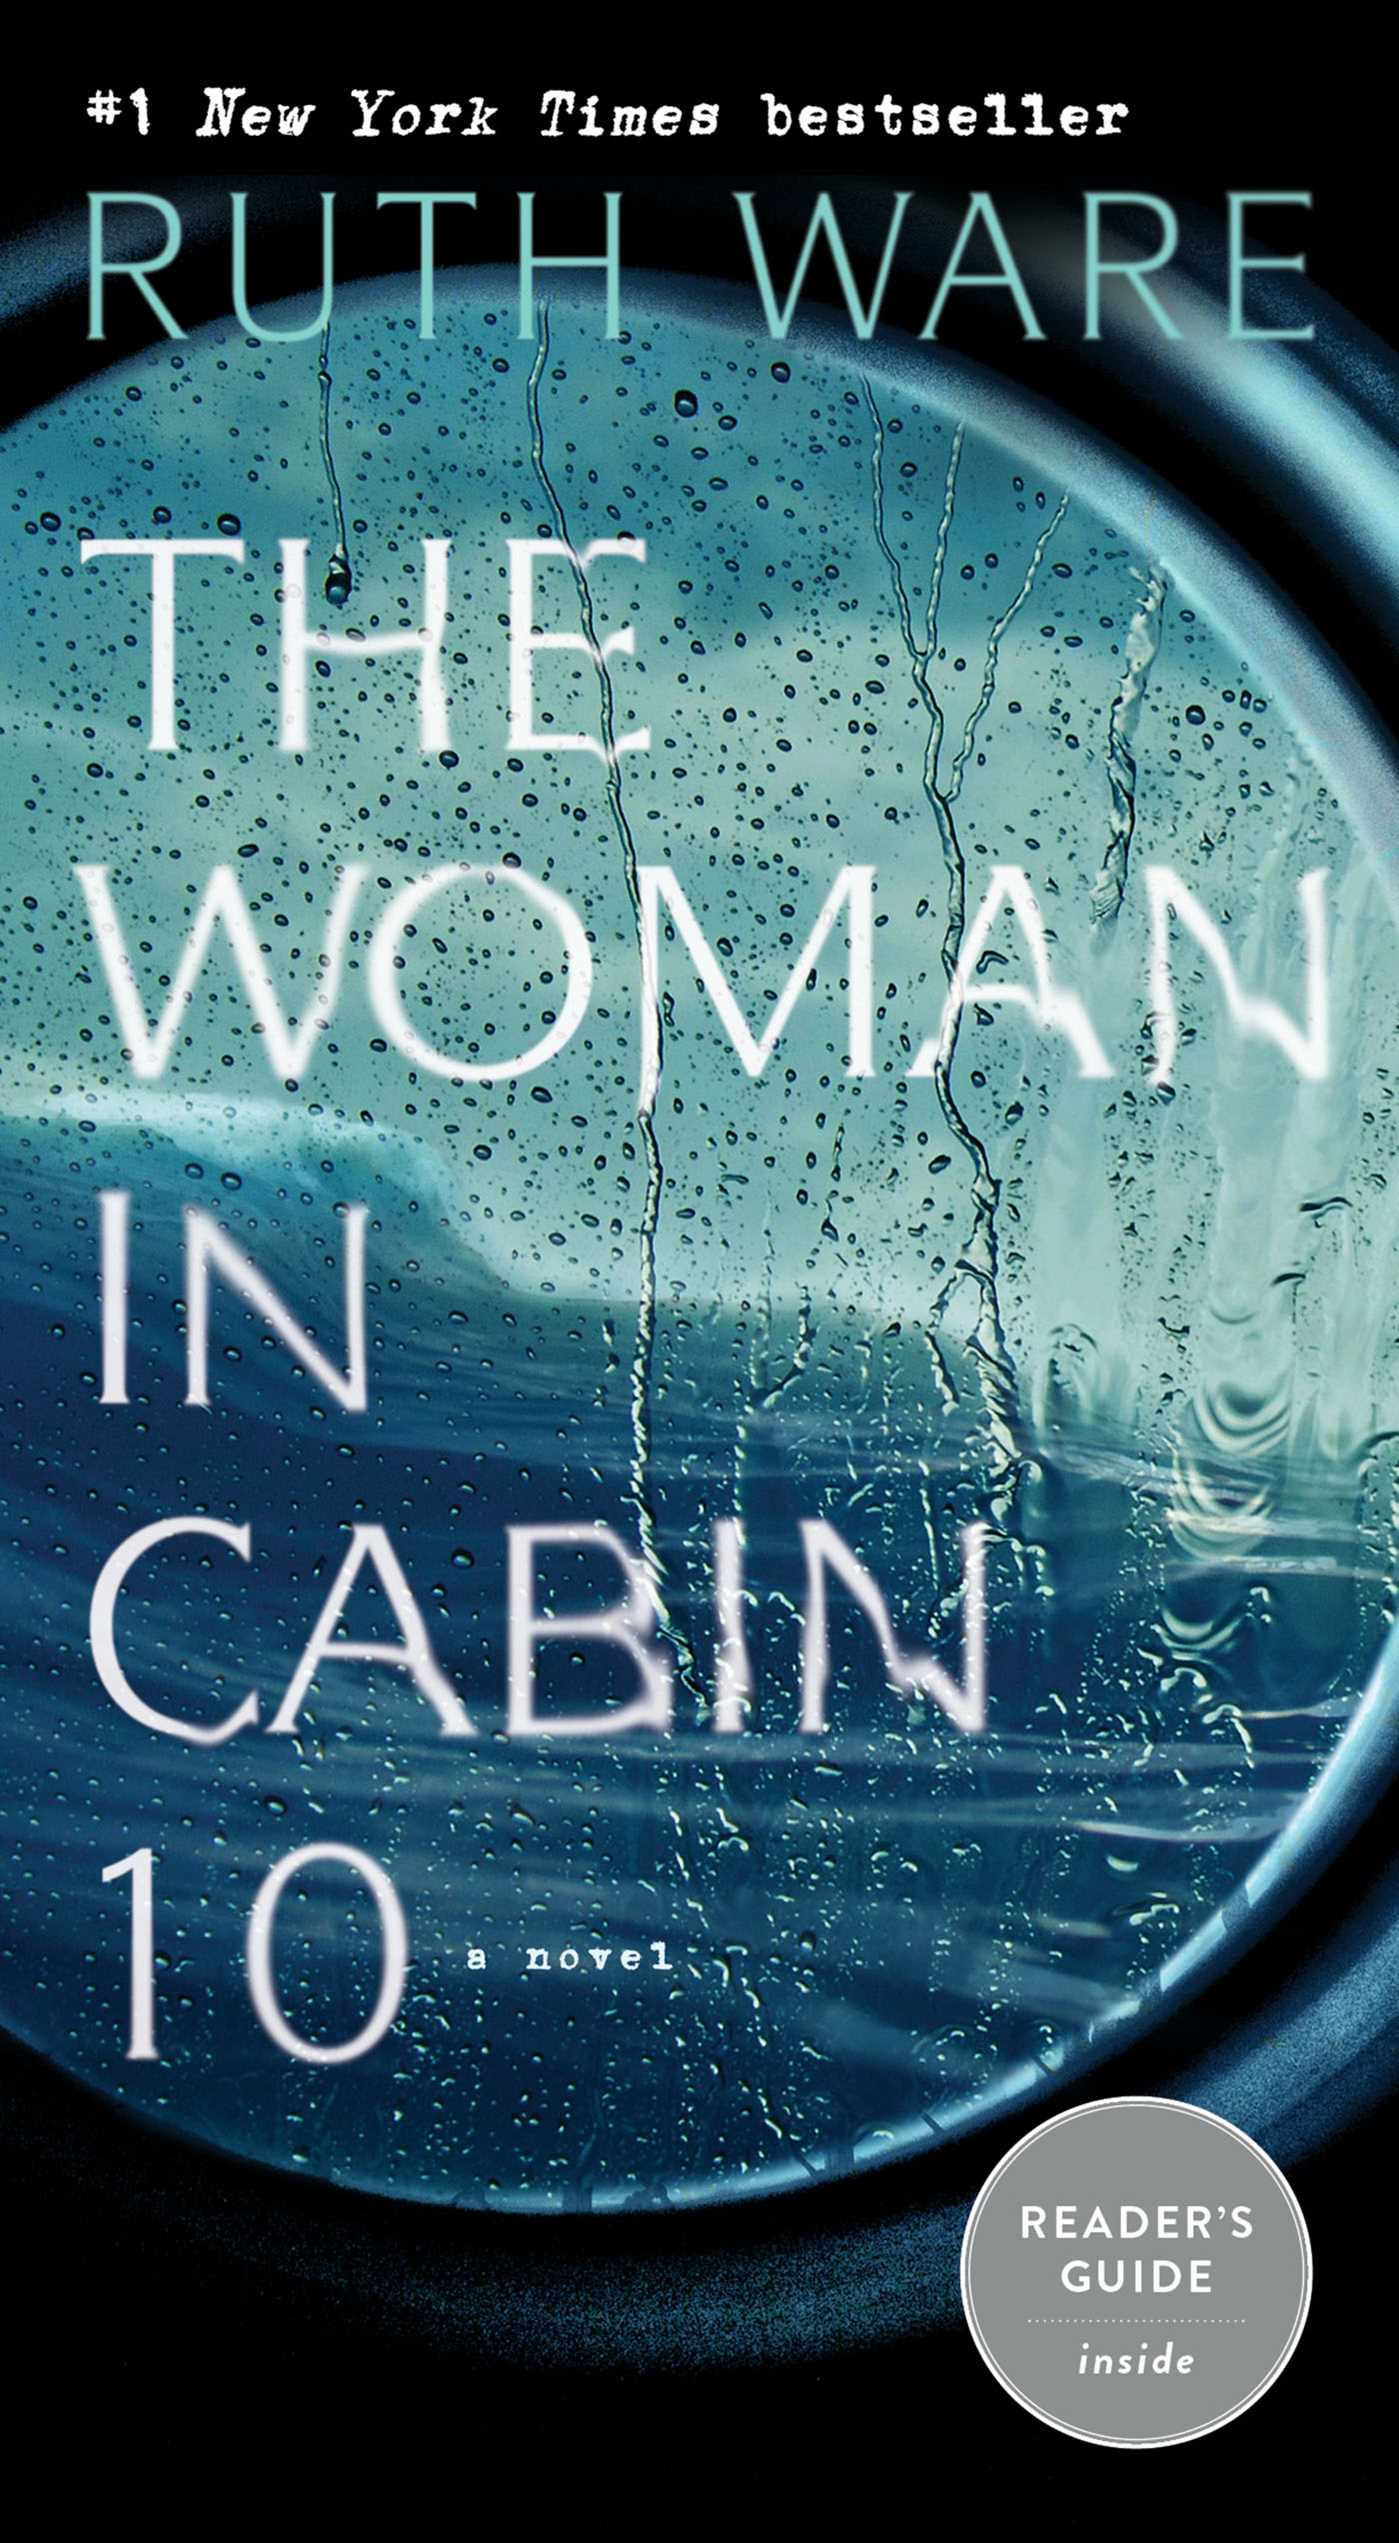 Image result for woman in cabin 10 book cover